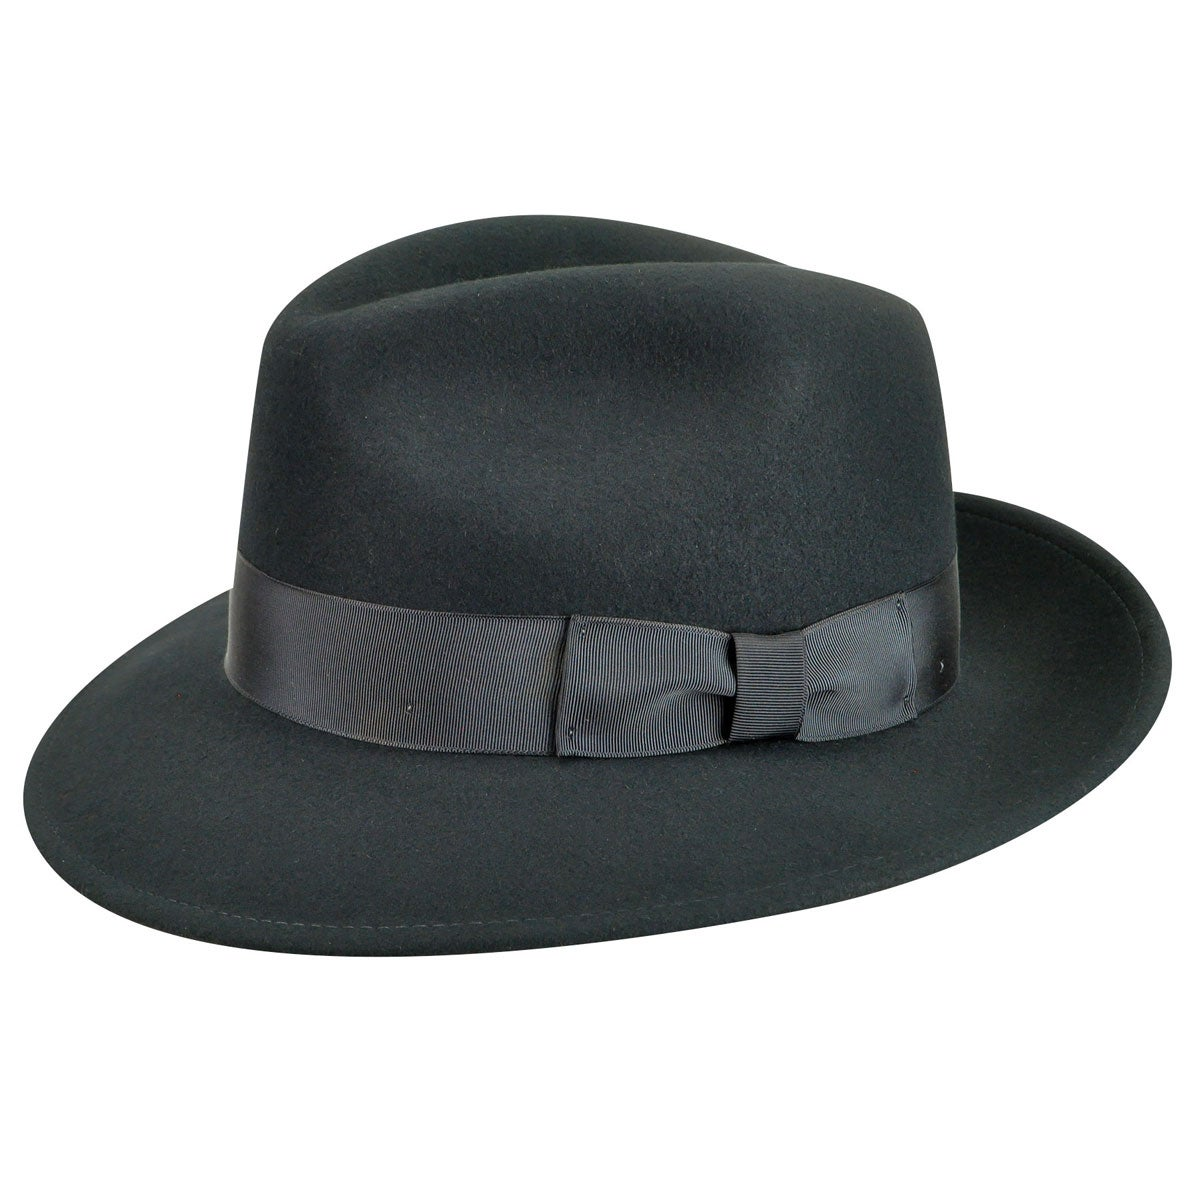 Retro Clothing for Men | Vintage Men's Fashion Frederick Fedora $60.00 AT vintagedancer.com